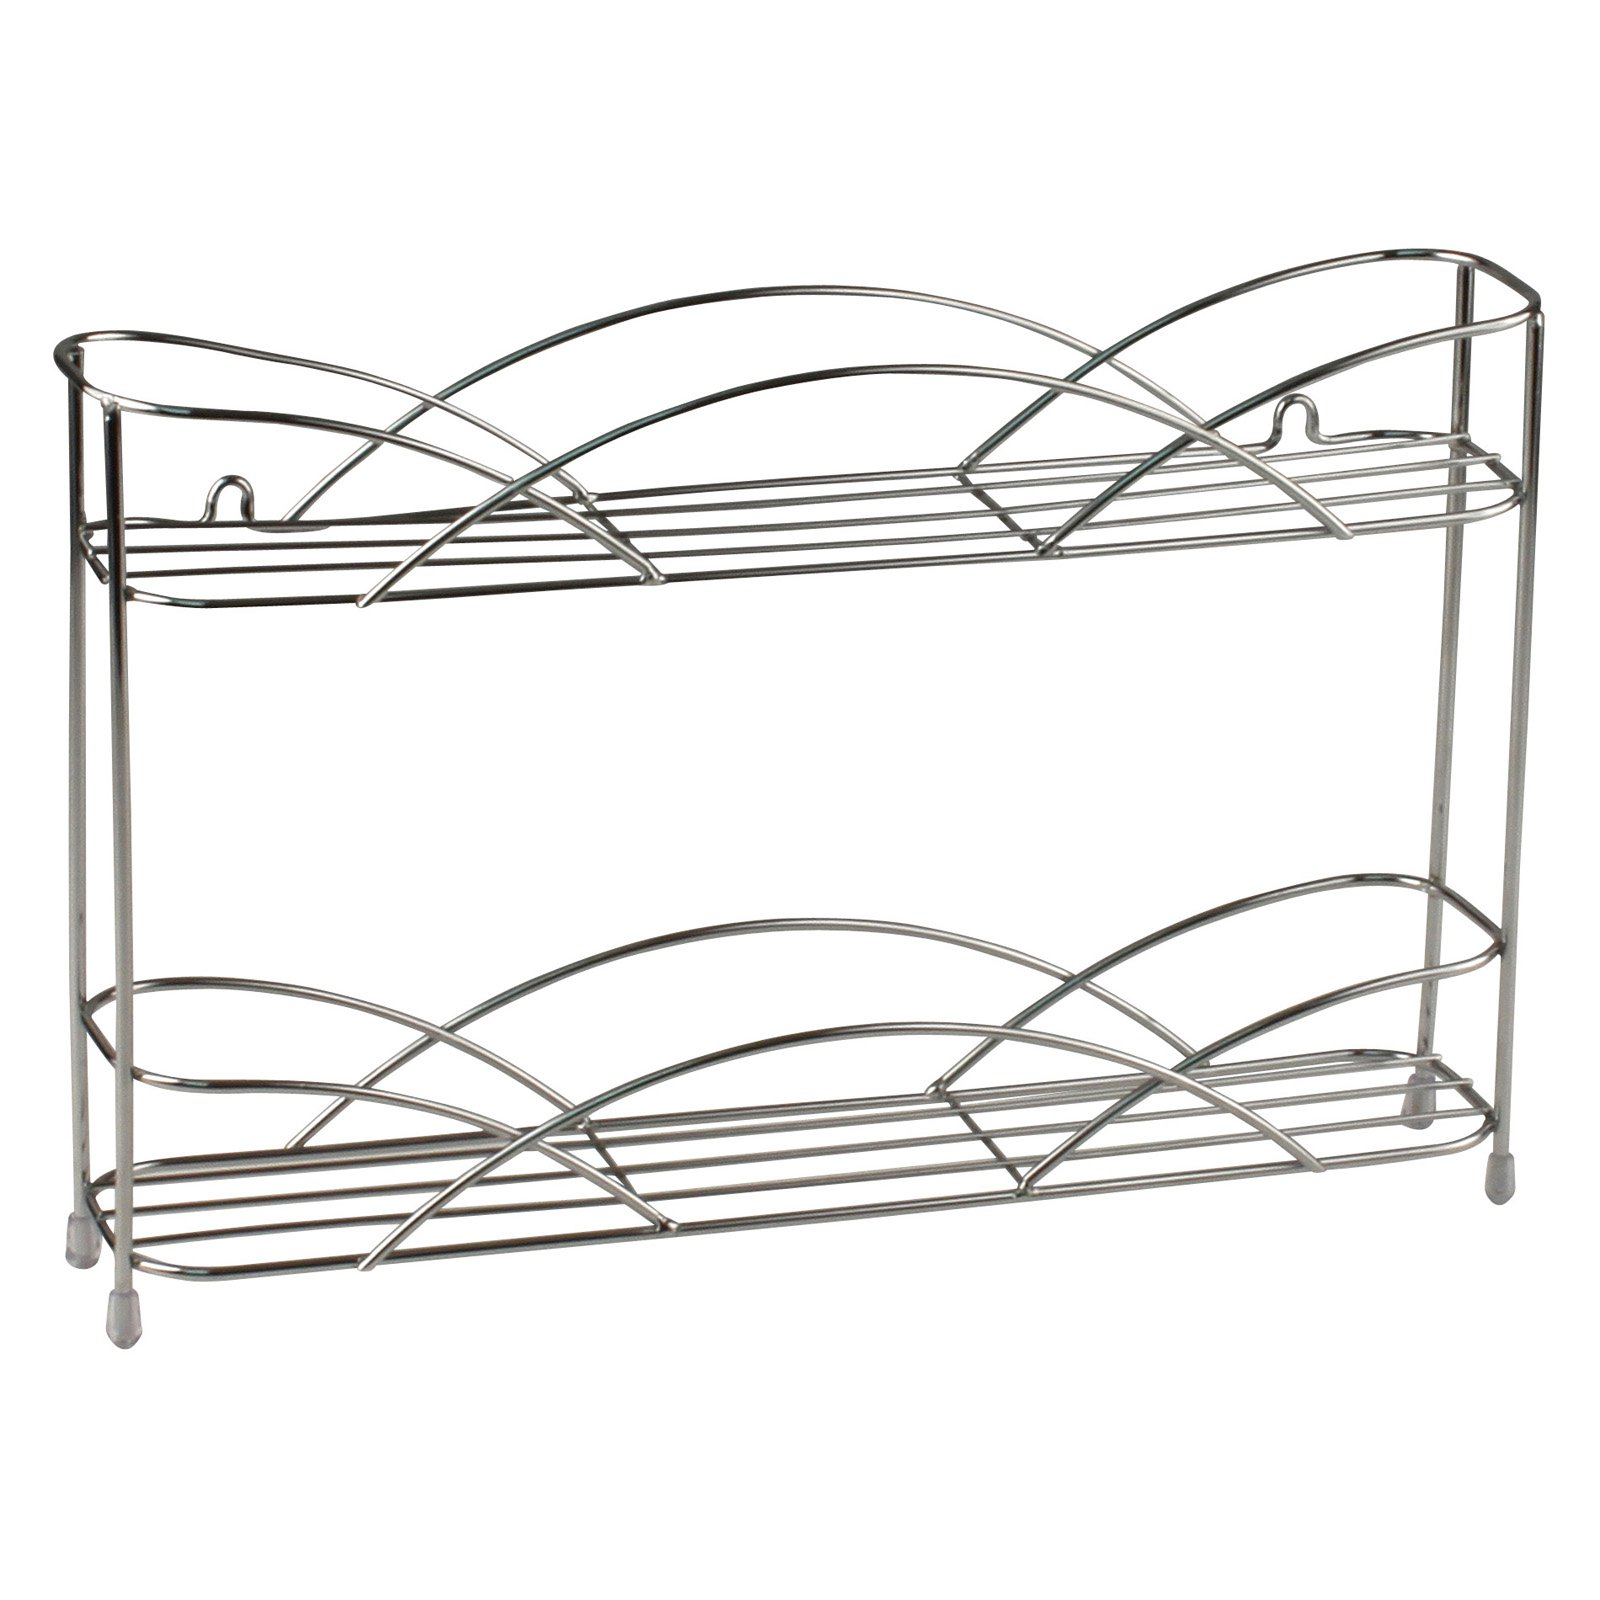 Spectrum Diversified Countertop and Wall Mount 2 Tier Spice Rack by